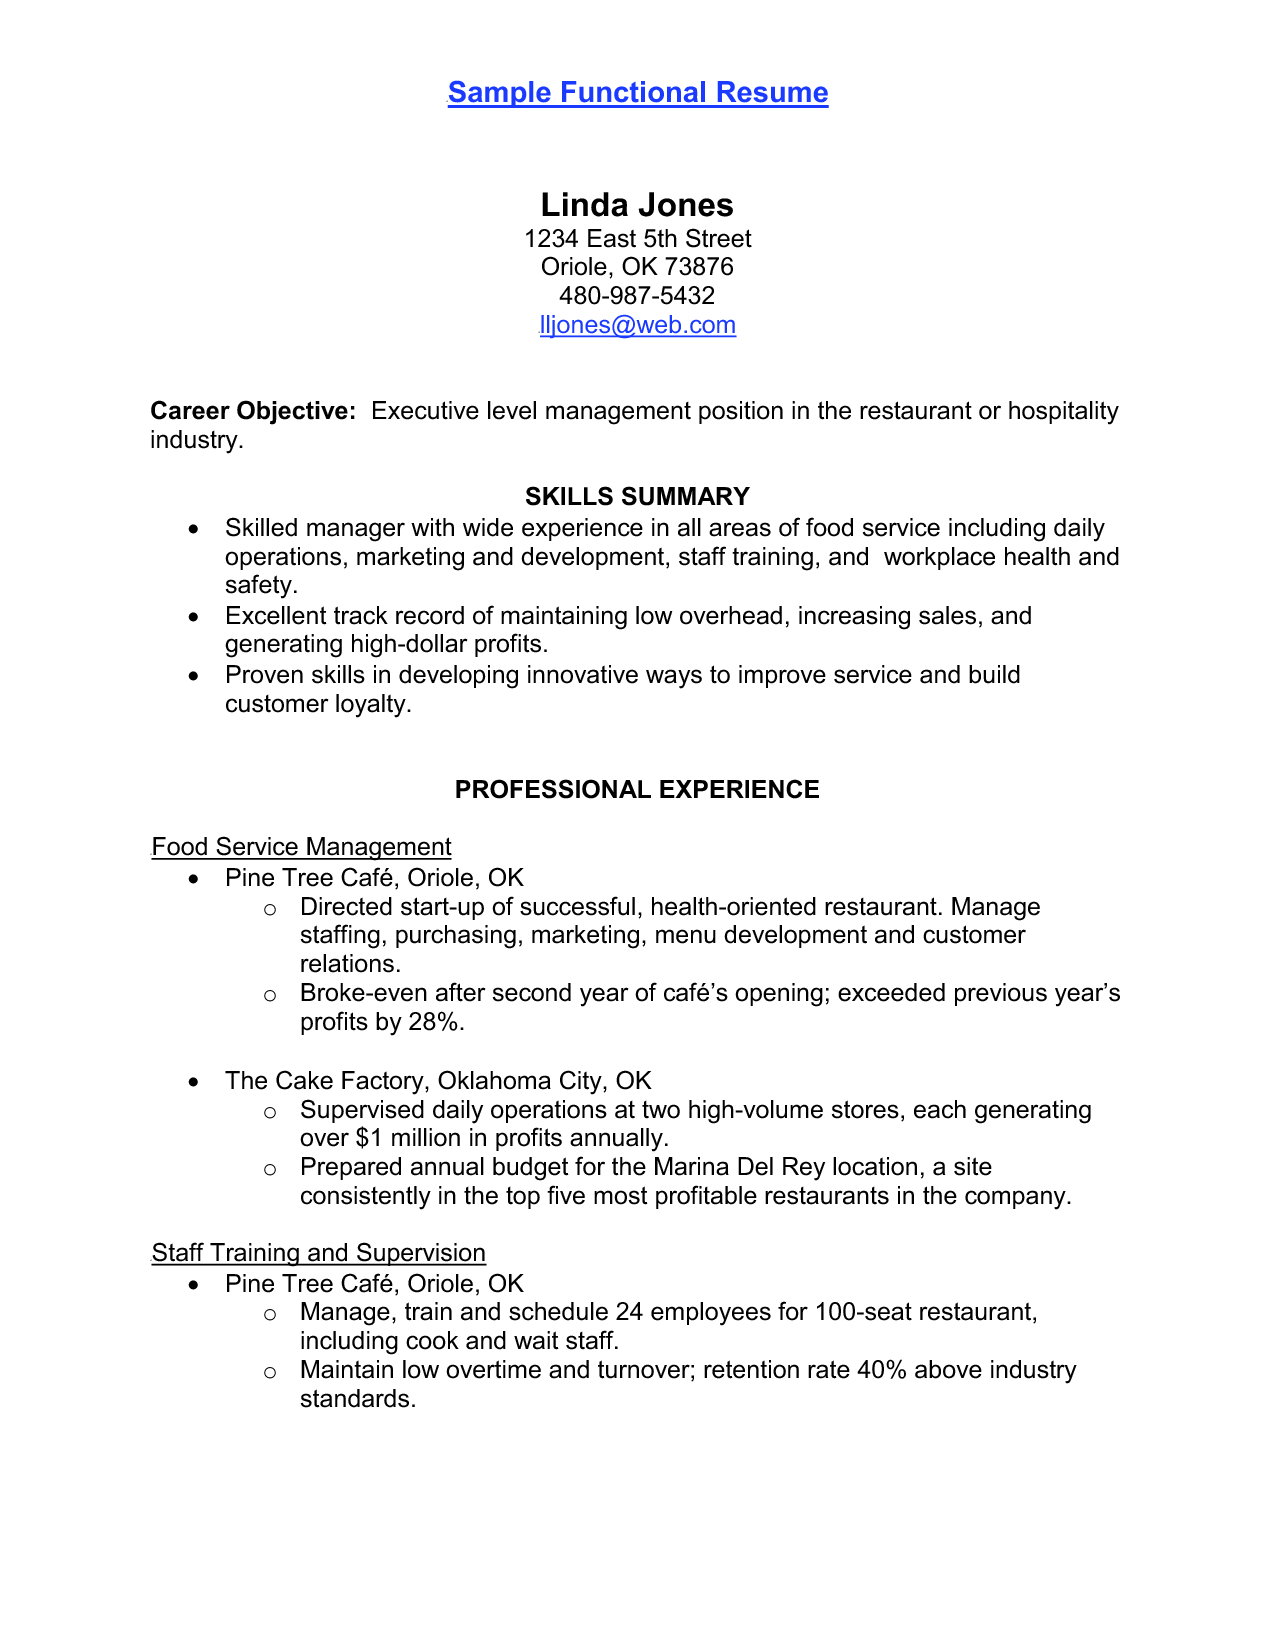 Fast Food Resume Objective - Resume Examples Tamu Resume Examples Pinterest